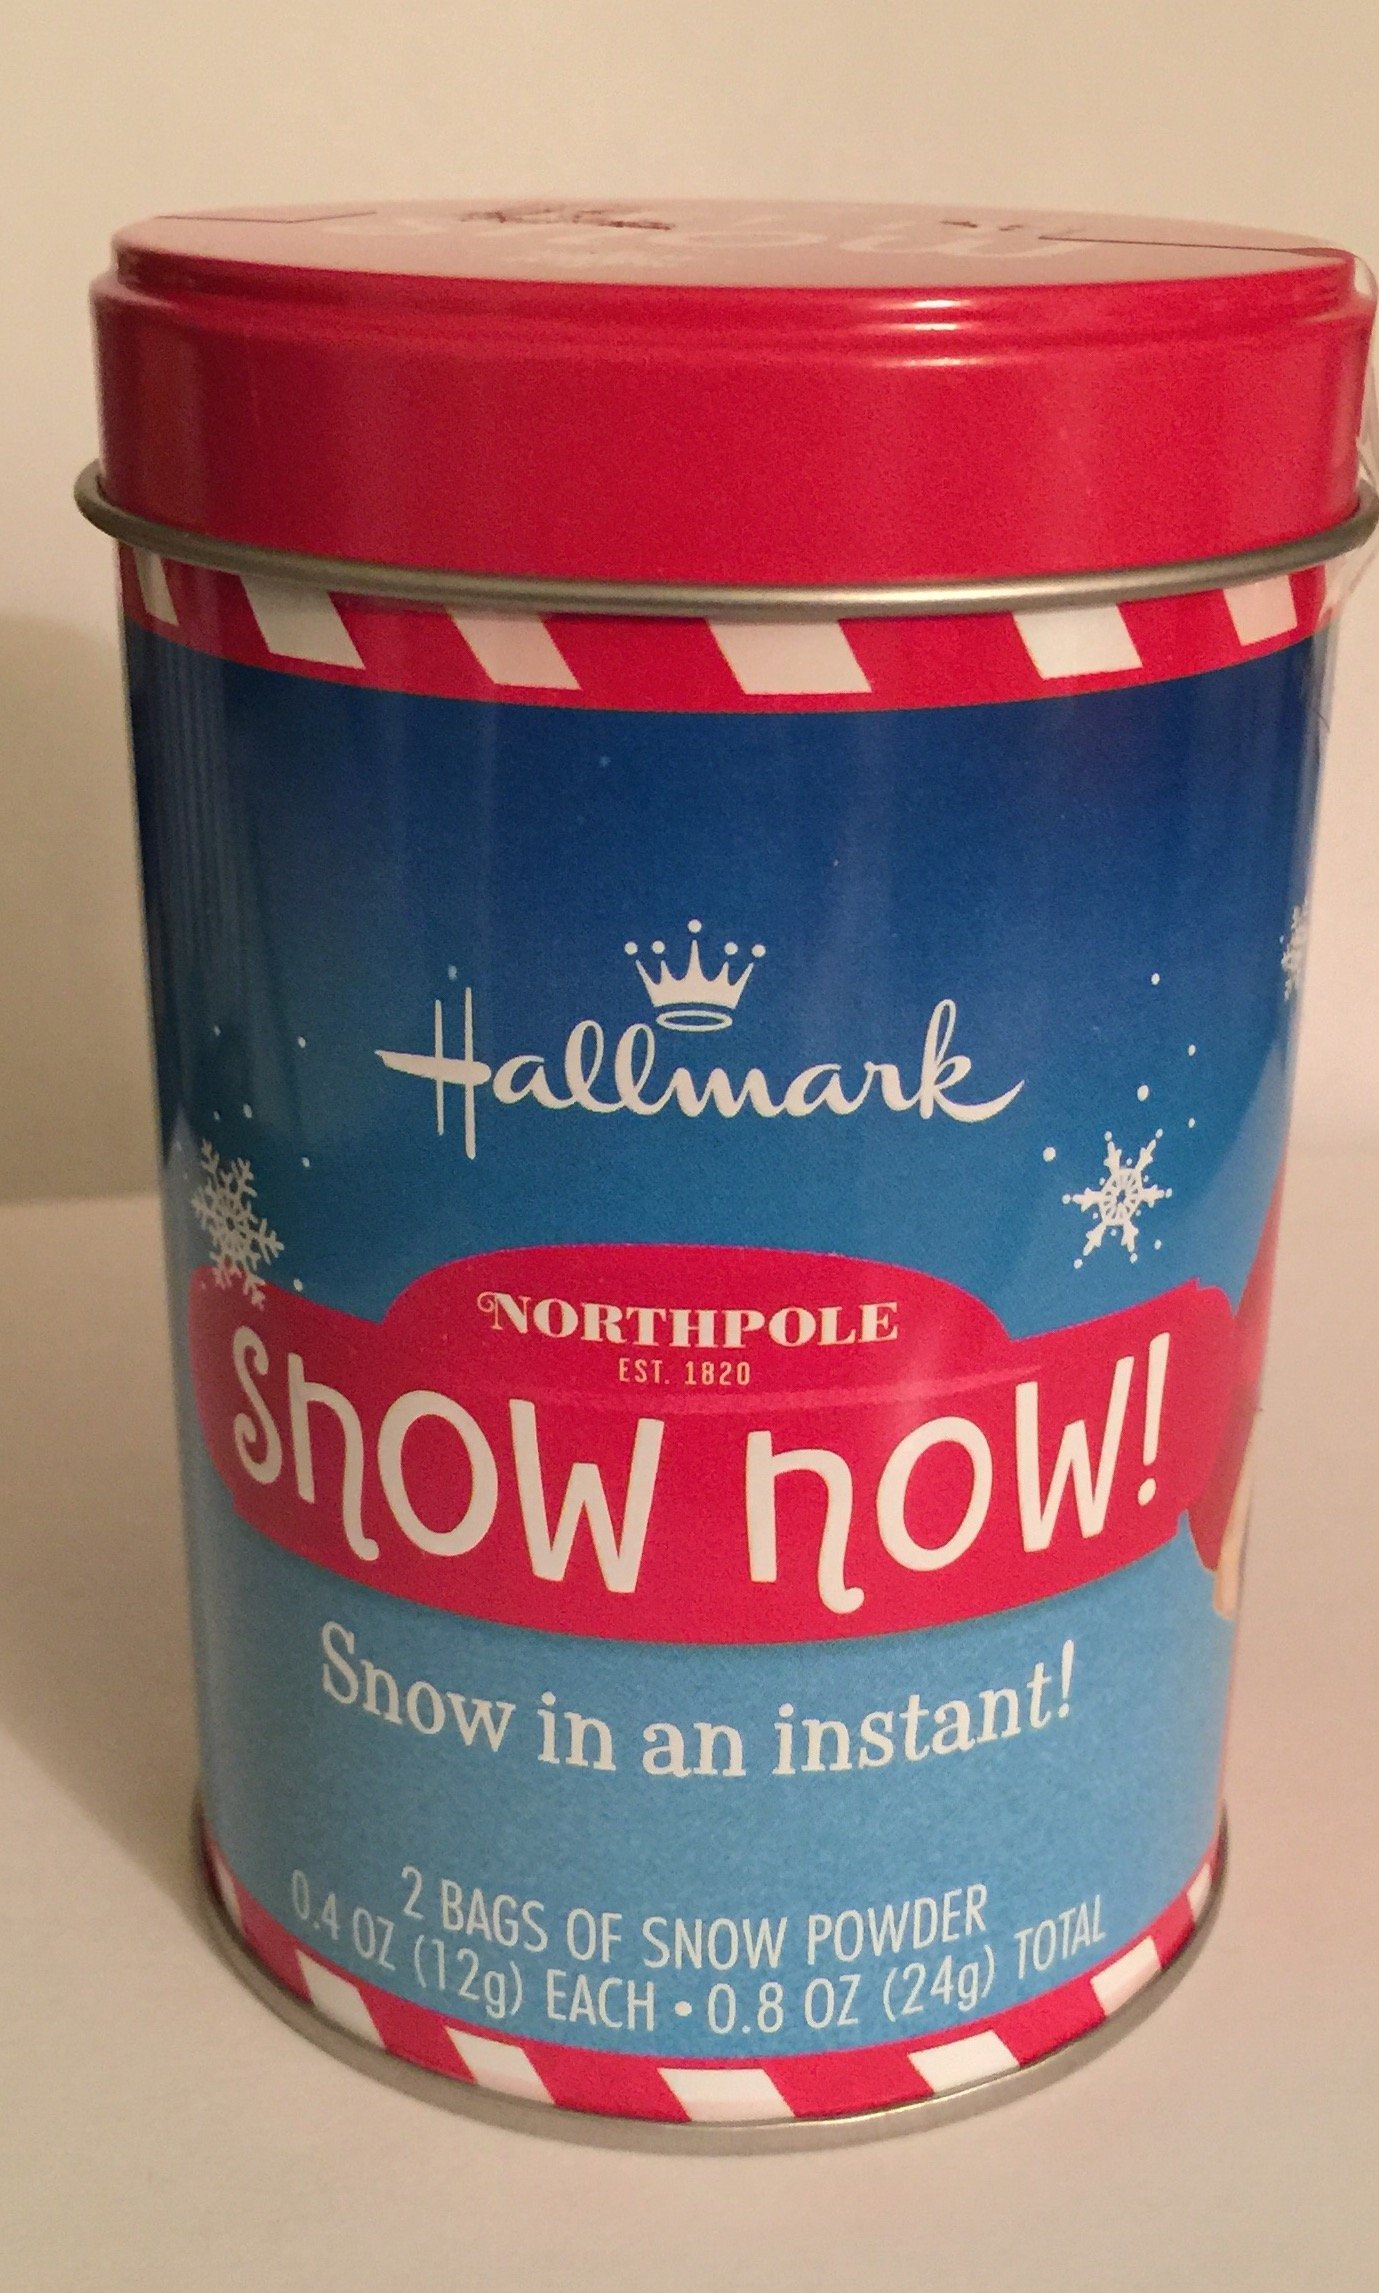 Hallmark Snow Now! Snow in an instant